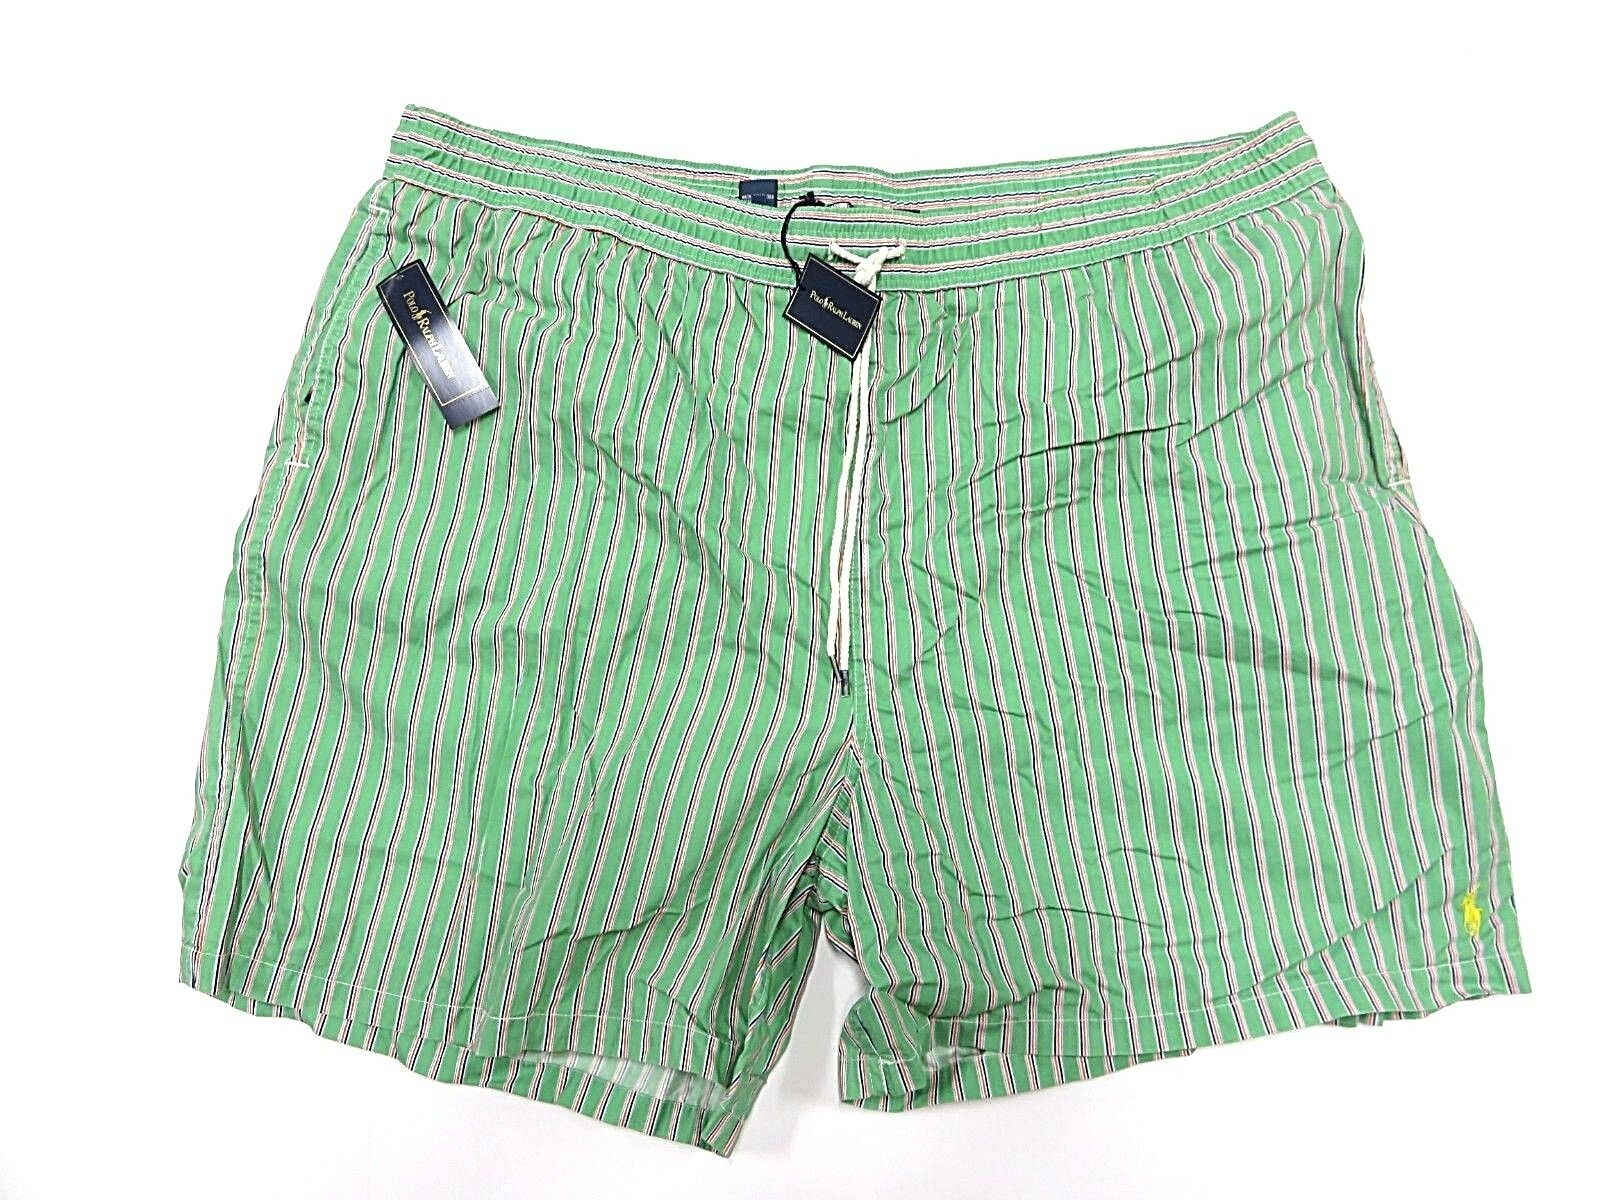 NWT Polo By Ralph Lauren Green Striped Swim Trunks Adult Men's Size 4XB